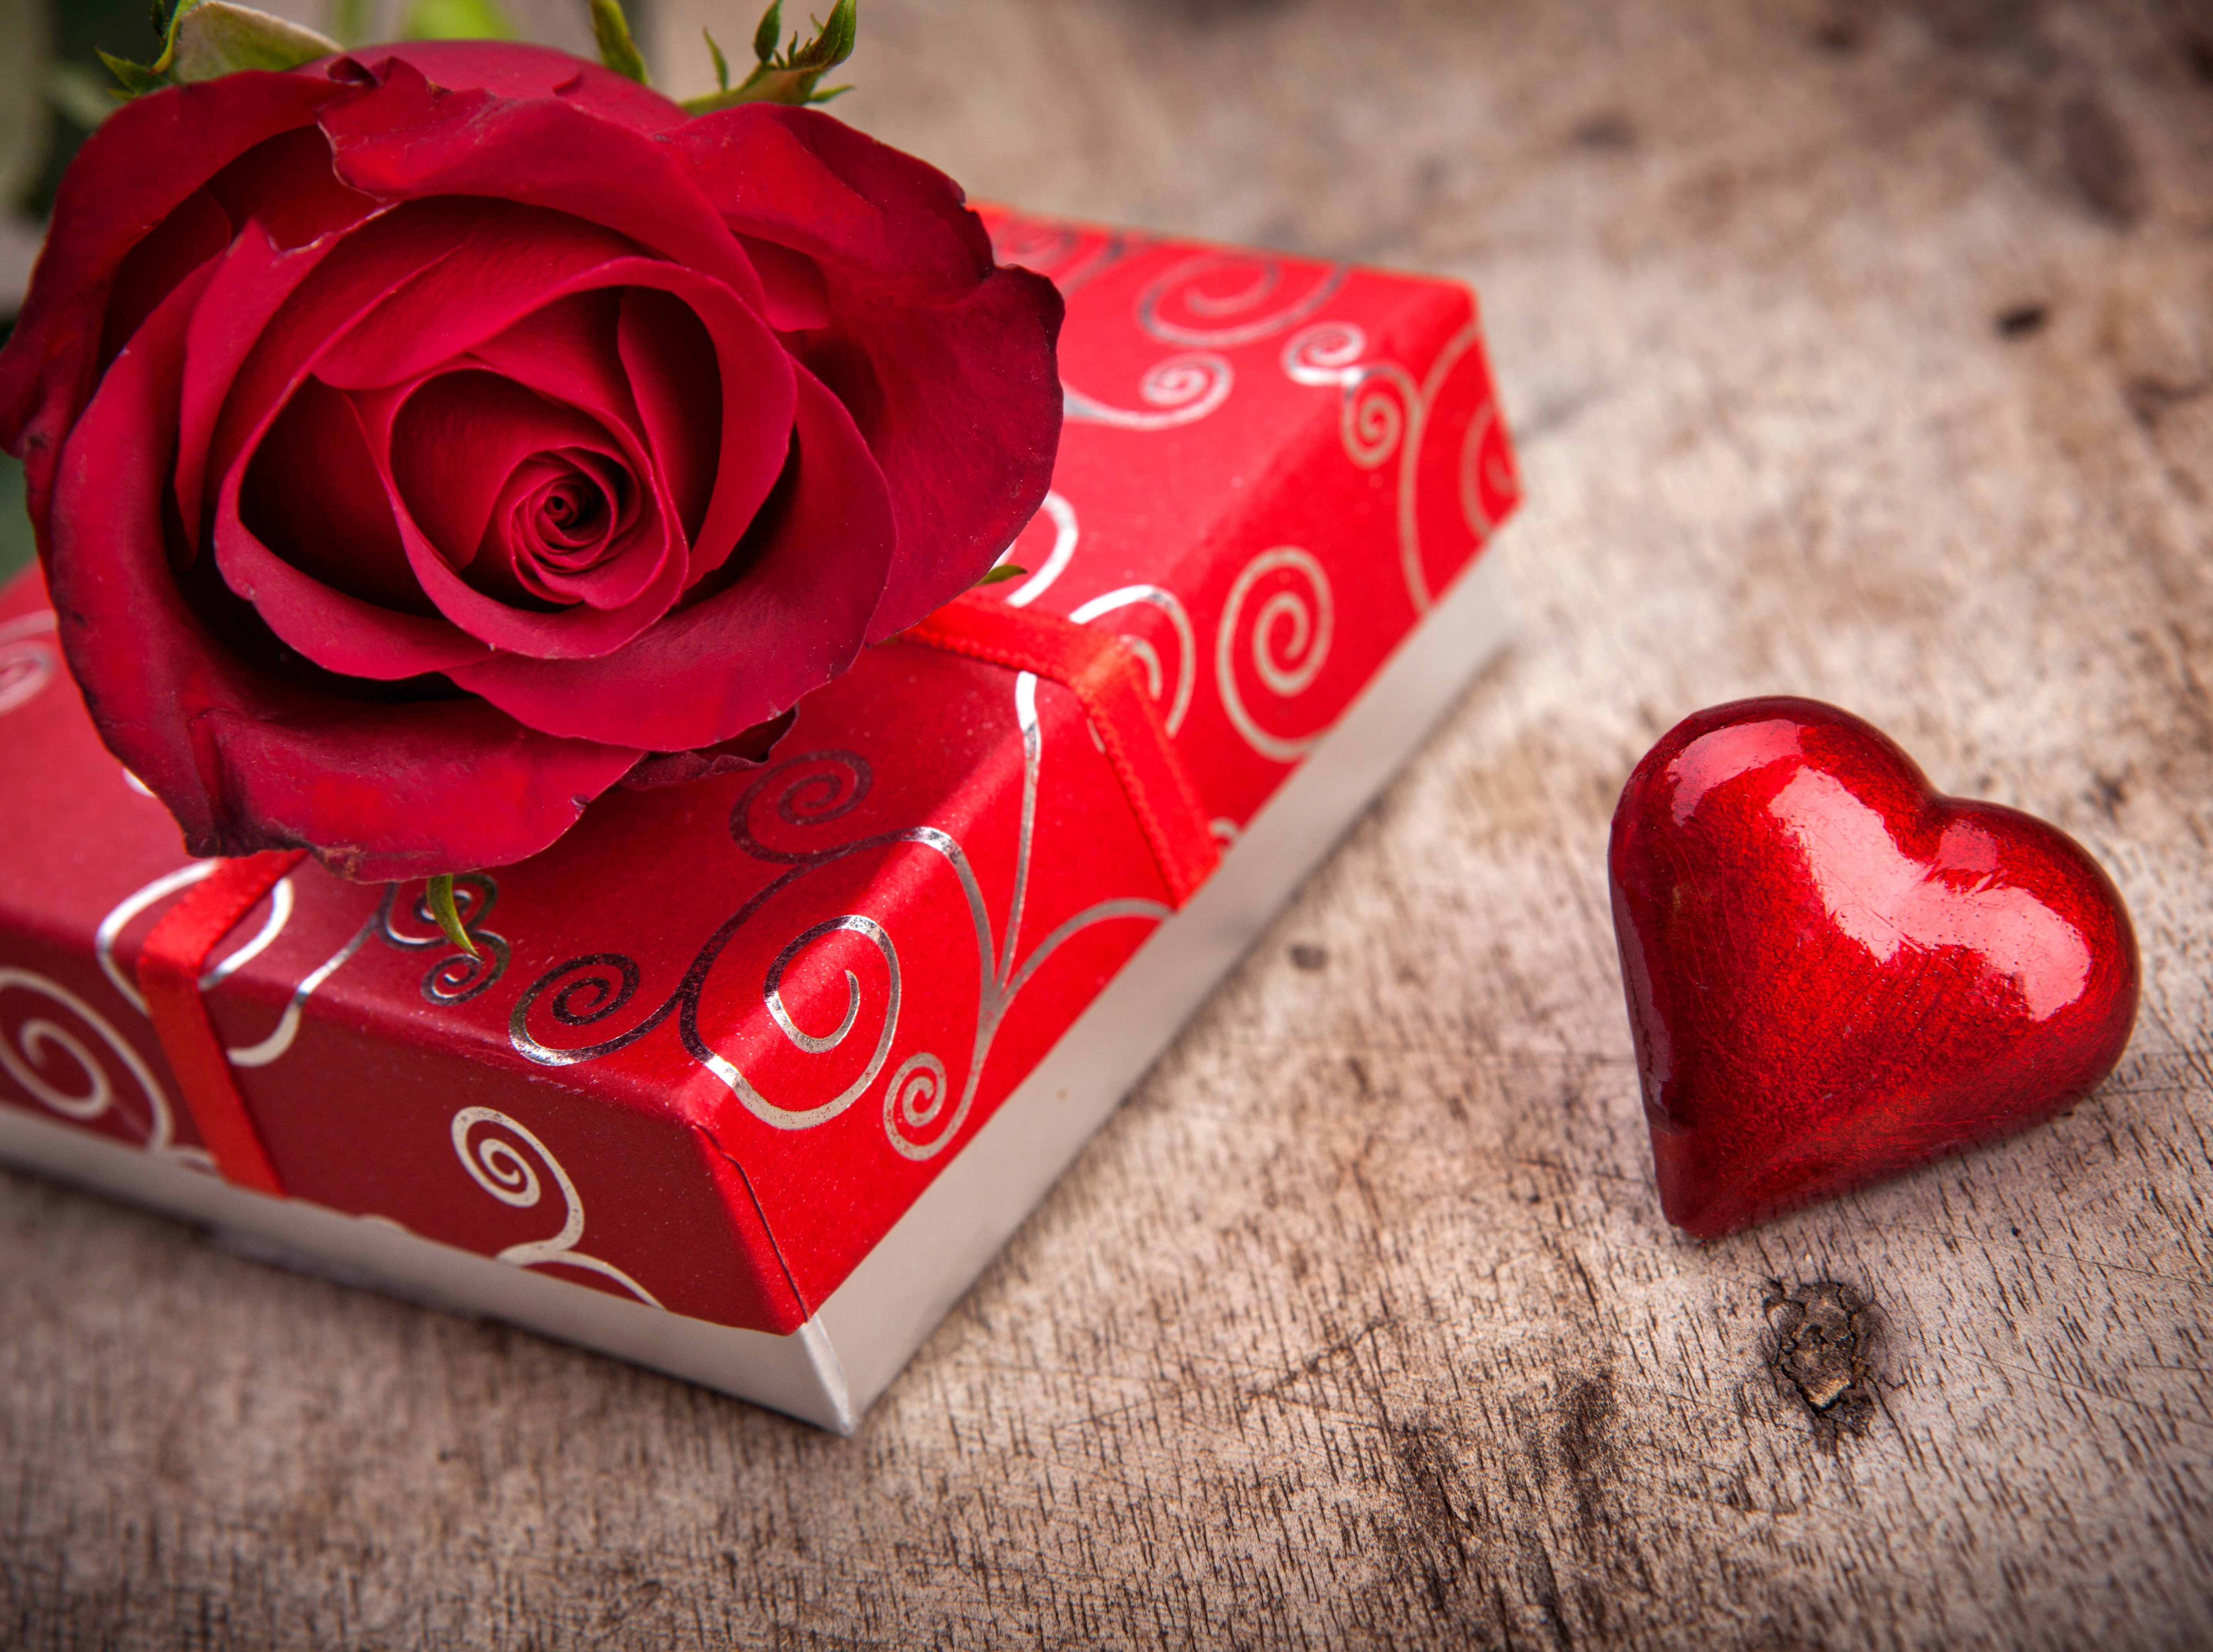 Rose Flowers Red Love Romance Life For Chocolate Gift Couple Heart